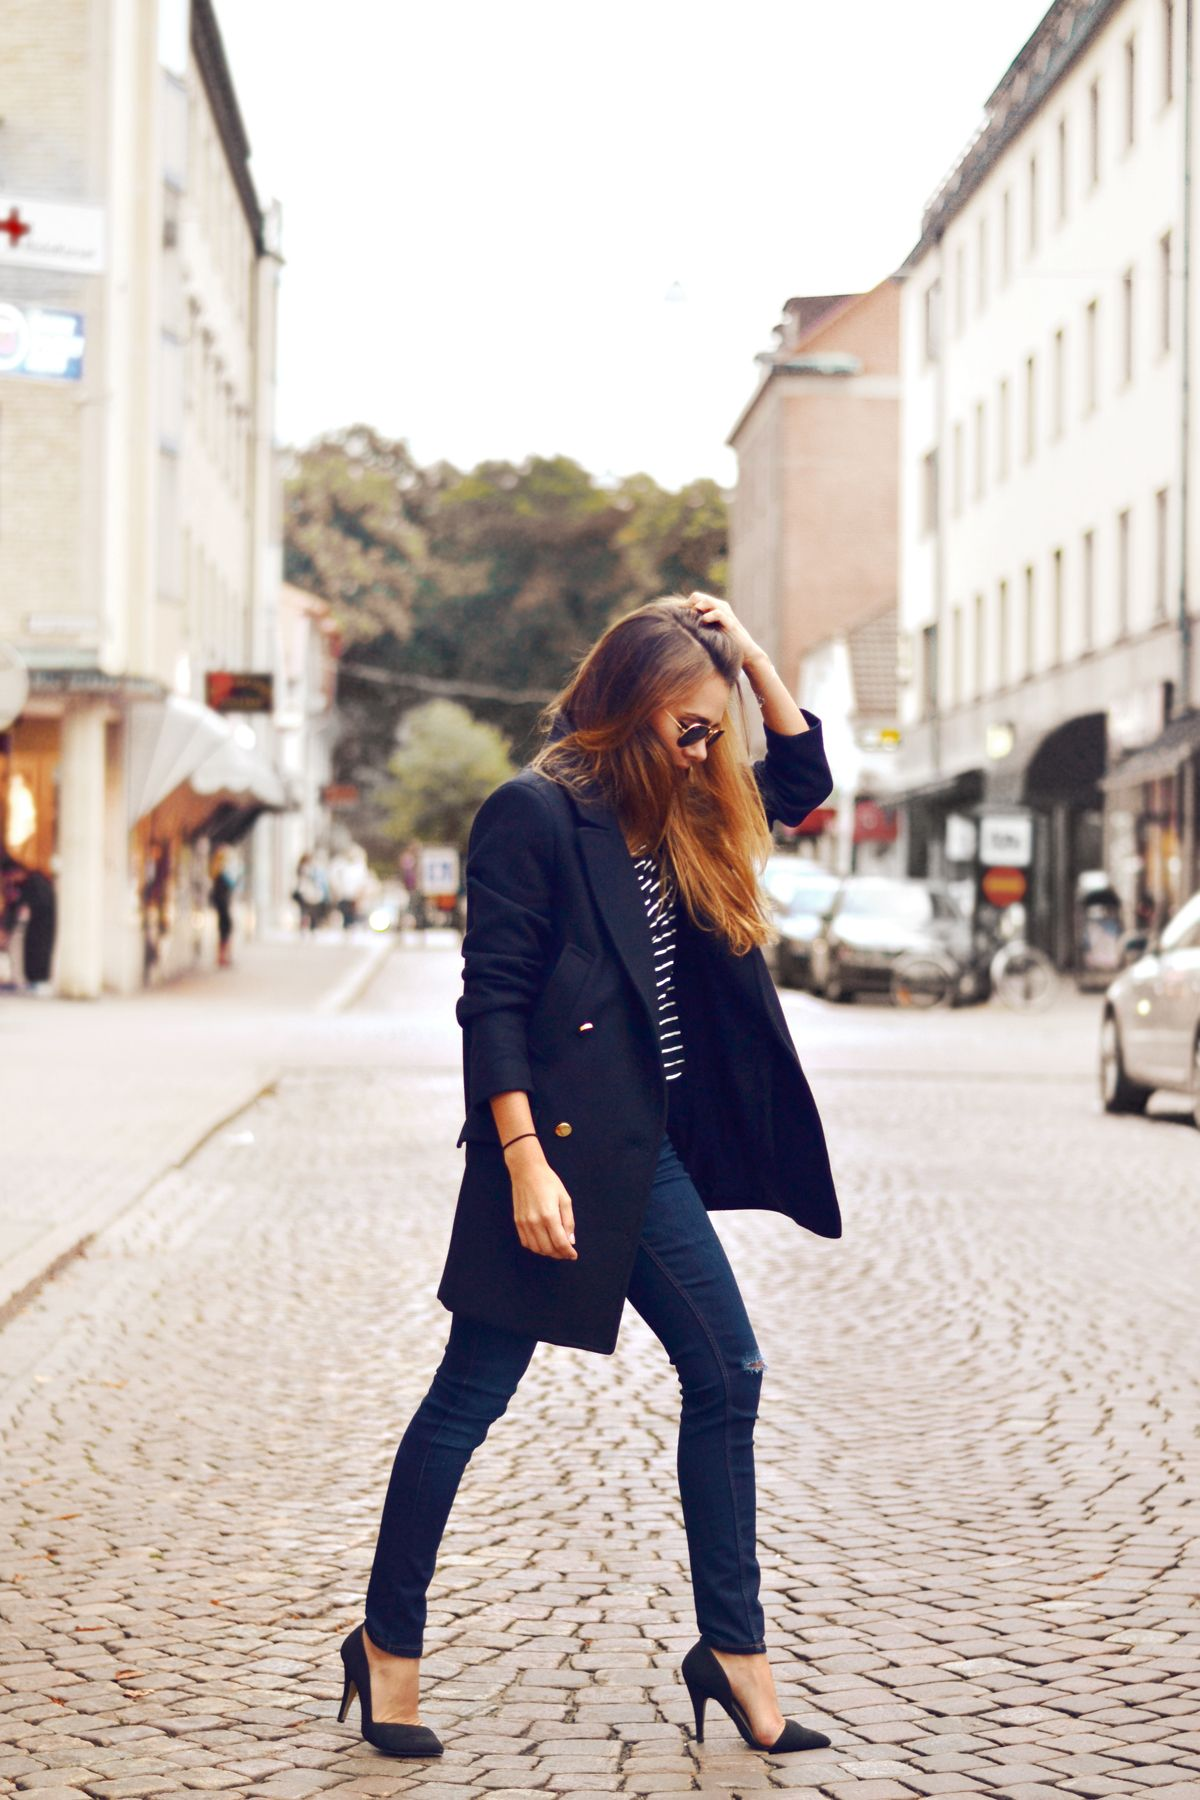 Lots of love for nautical style: a striped shirt plus a navy pea coat. Photo by Evelina Svantesson